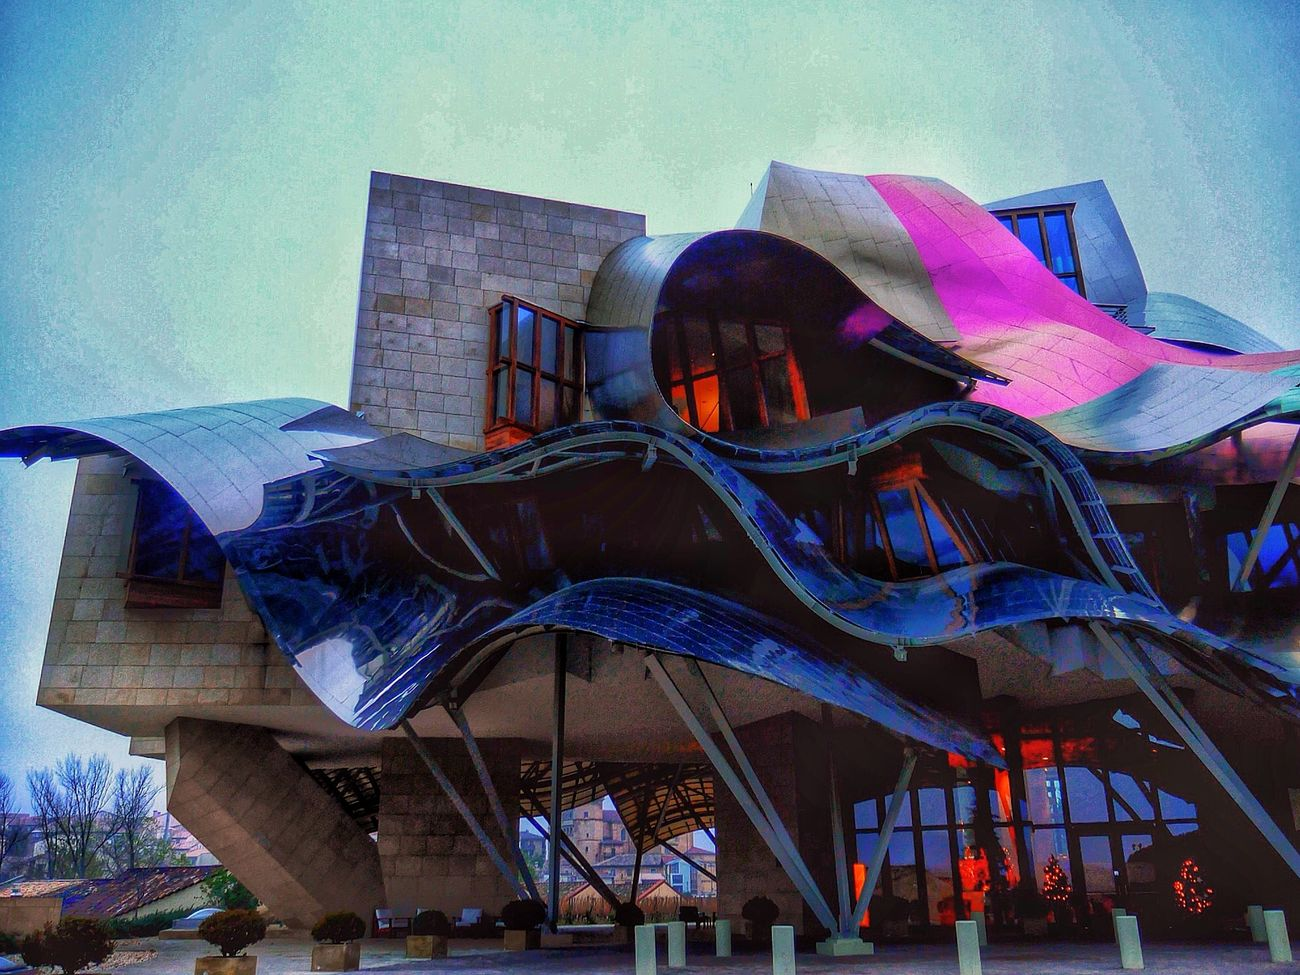 The Architect - 2015 EyeEm Awards Marques De Riscal Frank Gehry Elciego Bodega Hotel Restaurant Somosfelices Enjoying Life Moments